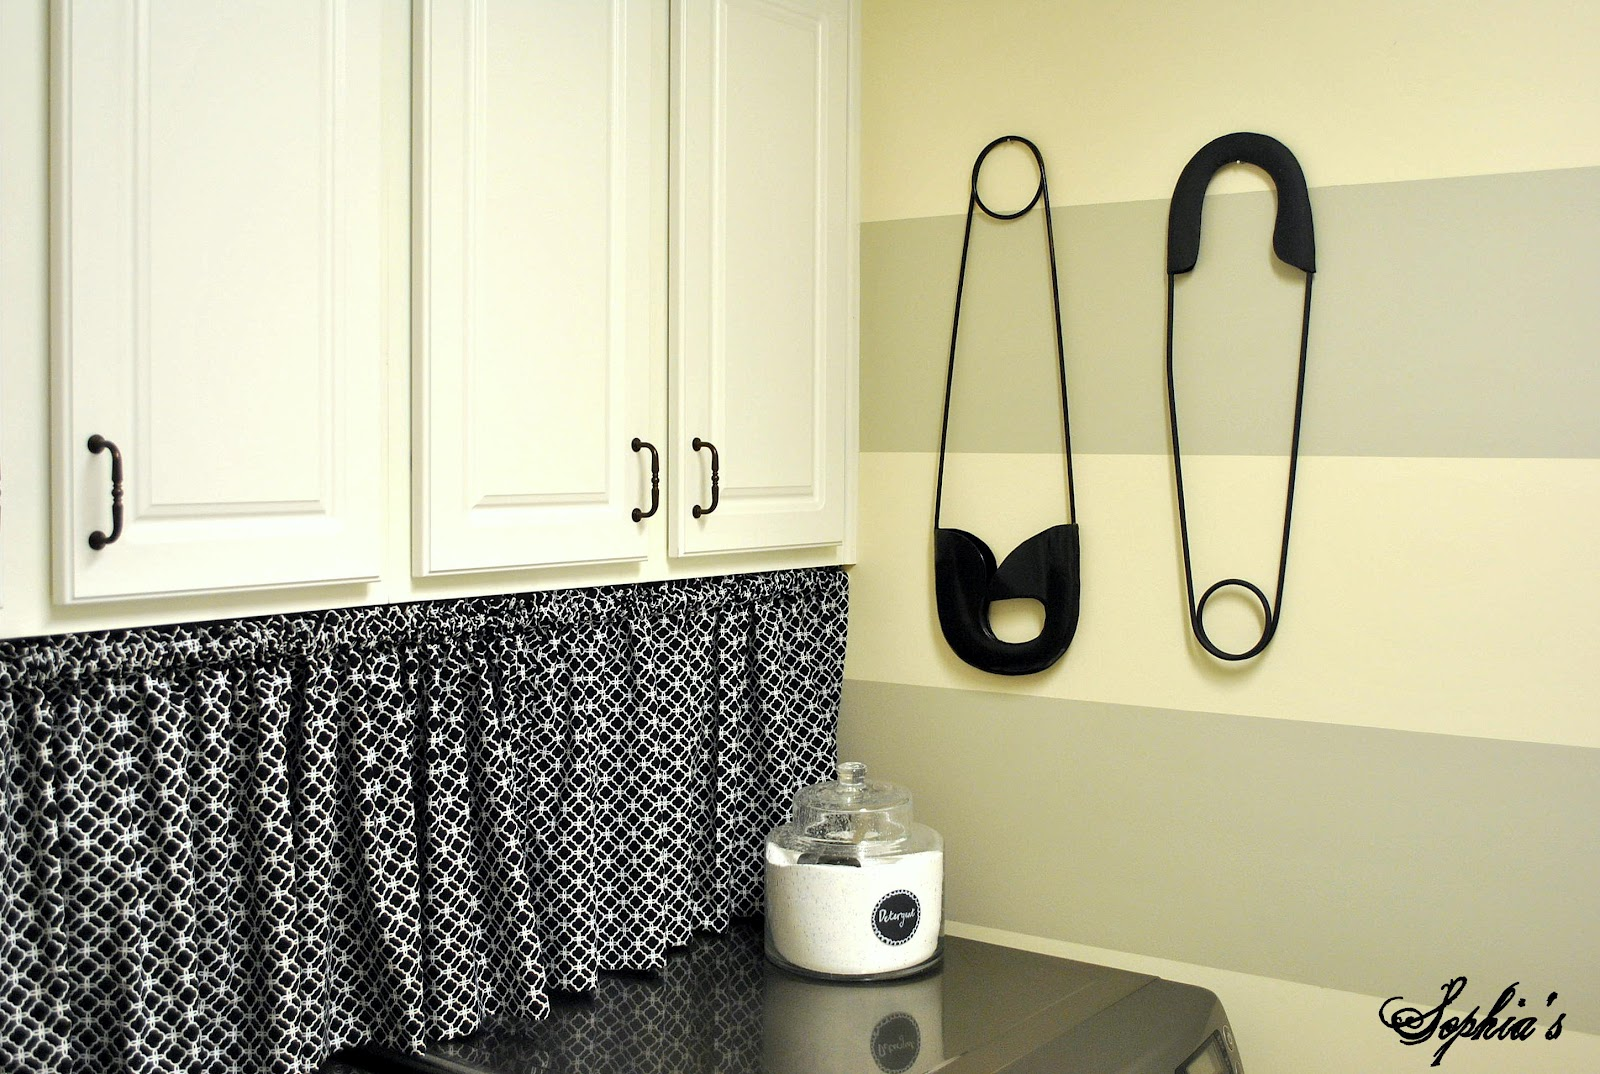 Design and decor laundry room reveal for Laundry room decor accessories